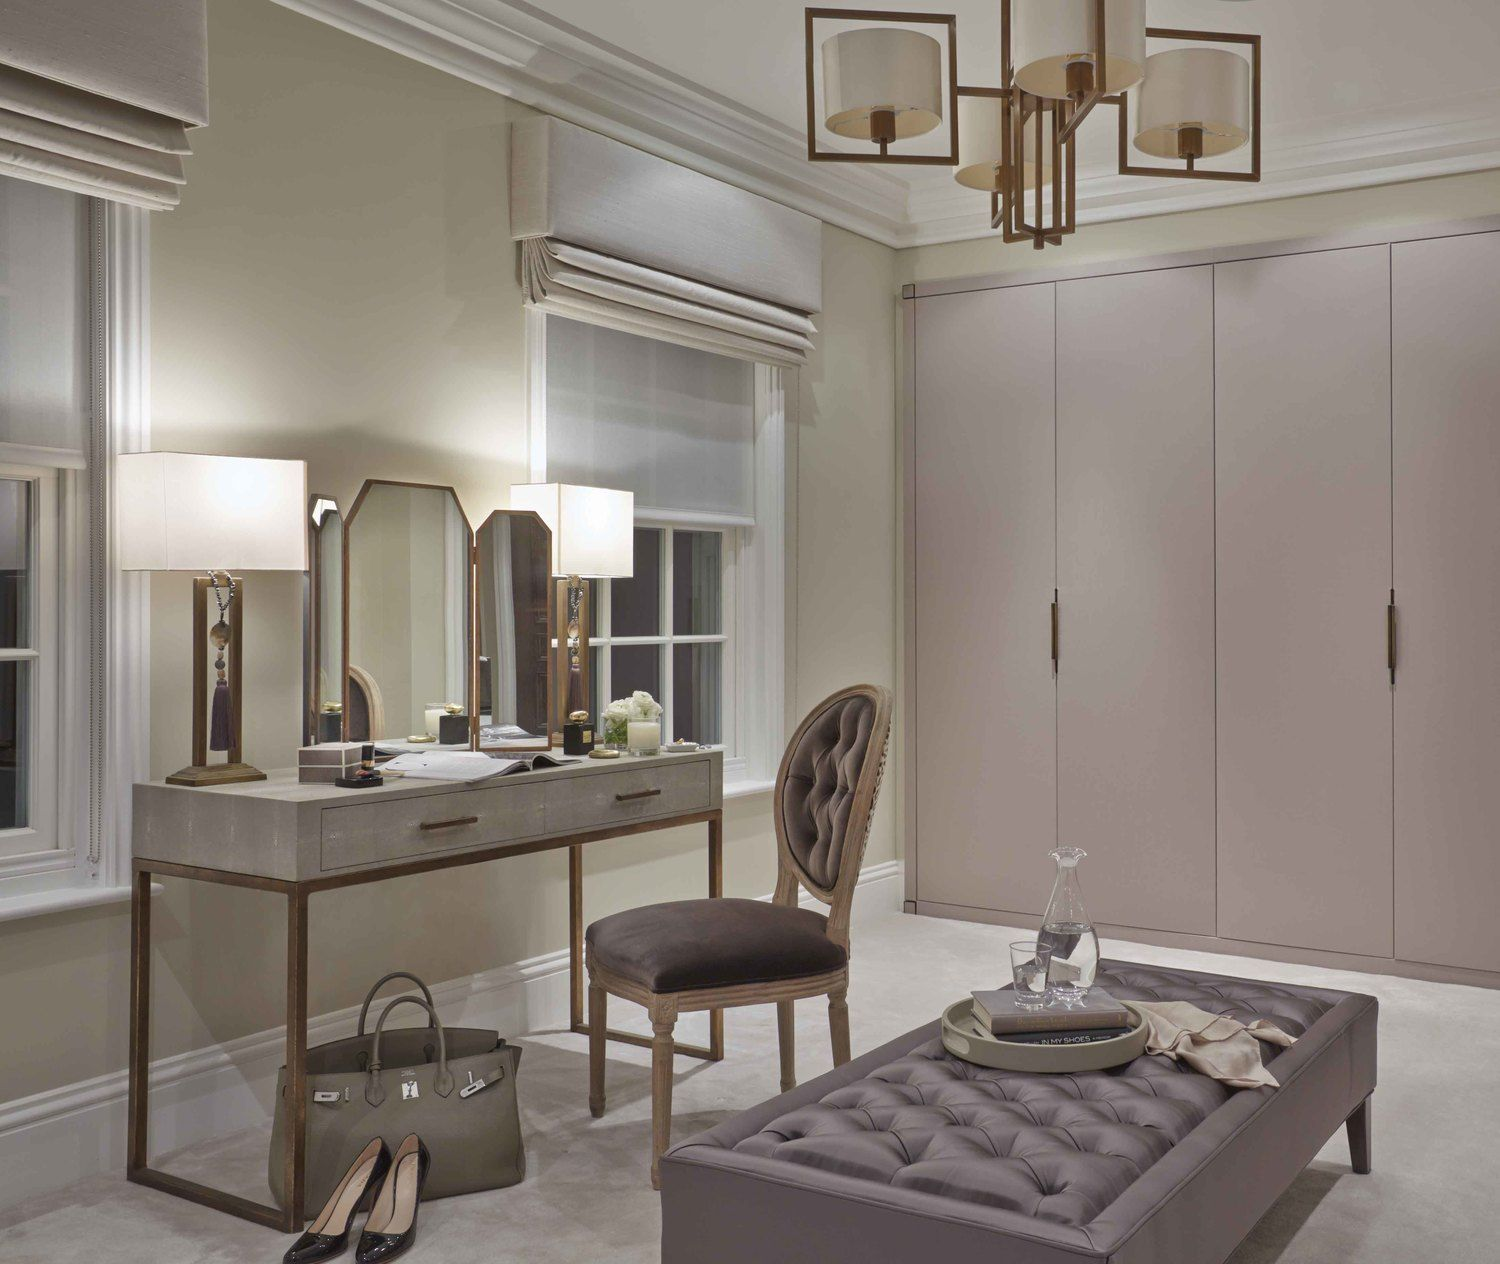 Lovely dressing area sophie patterson design closet for Bathroom designs with dressing area